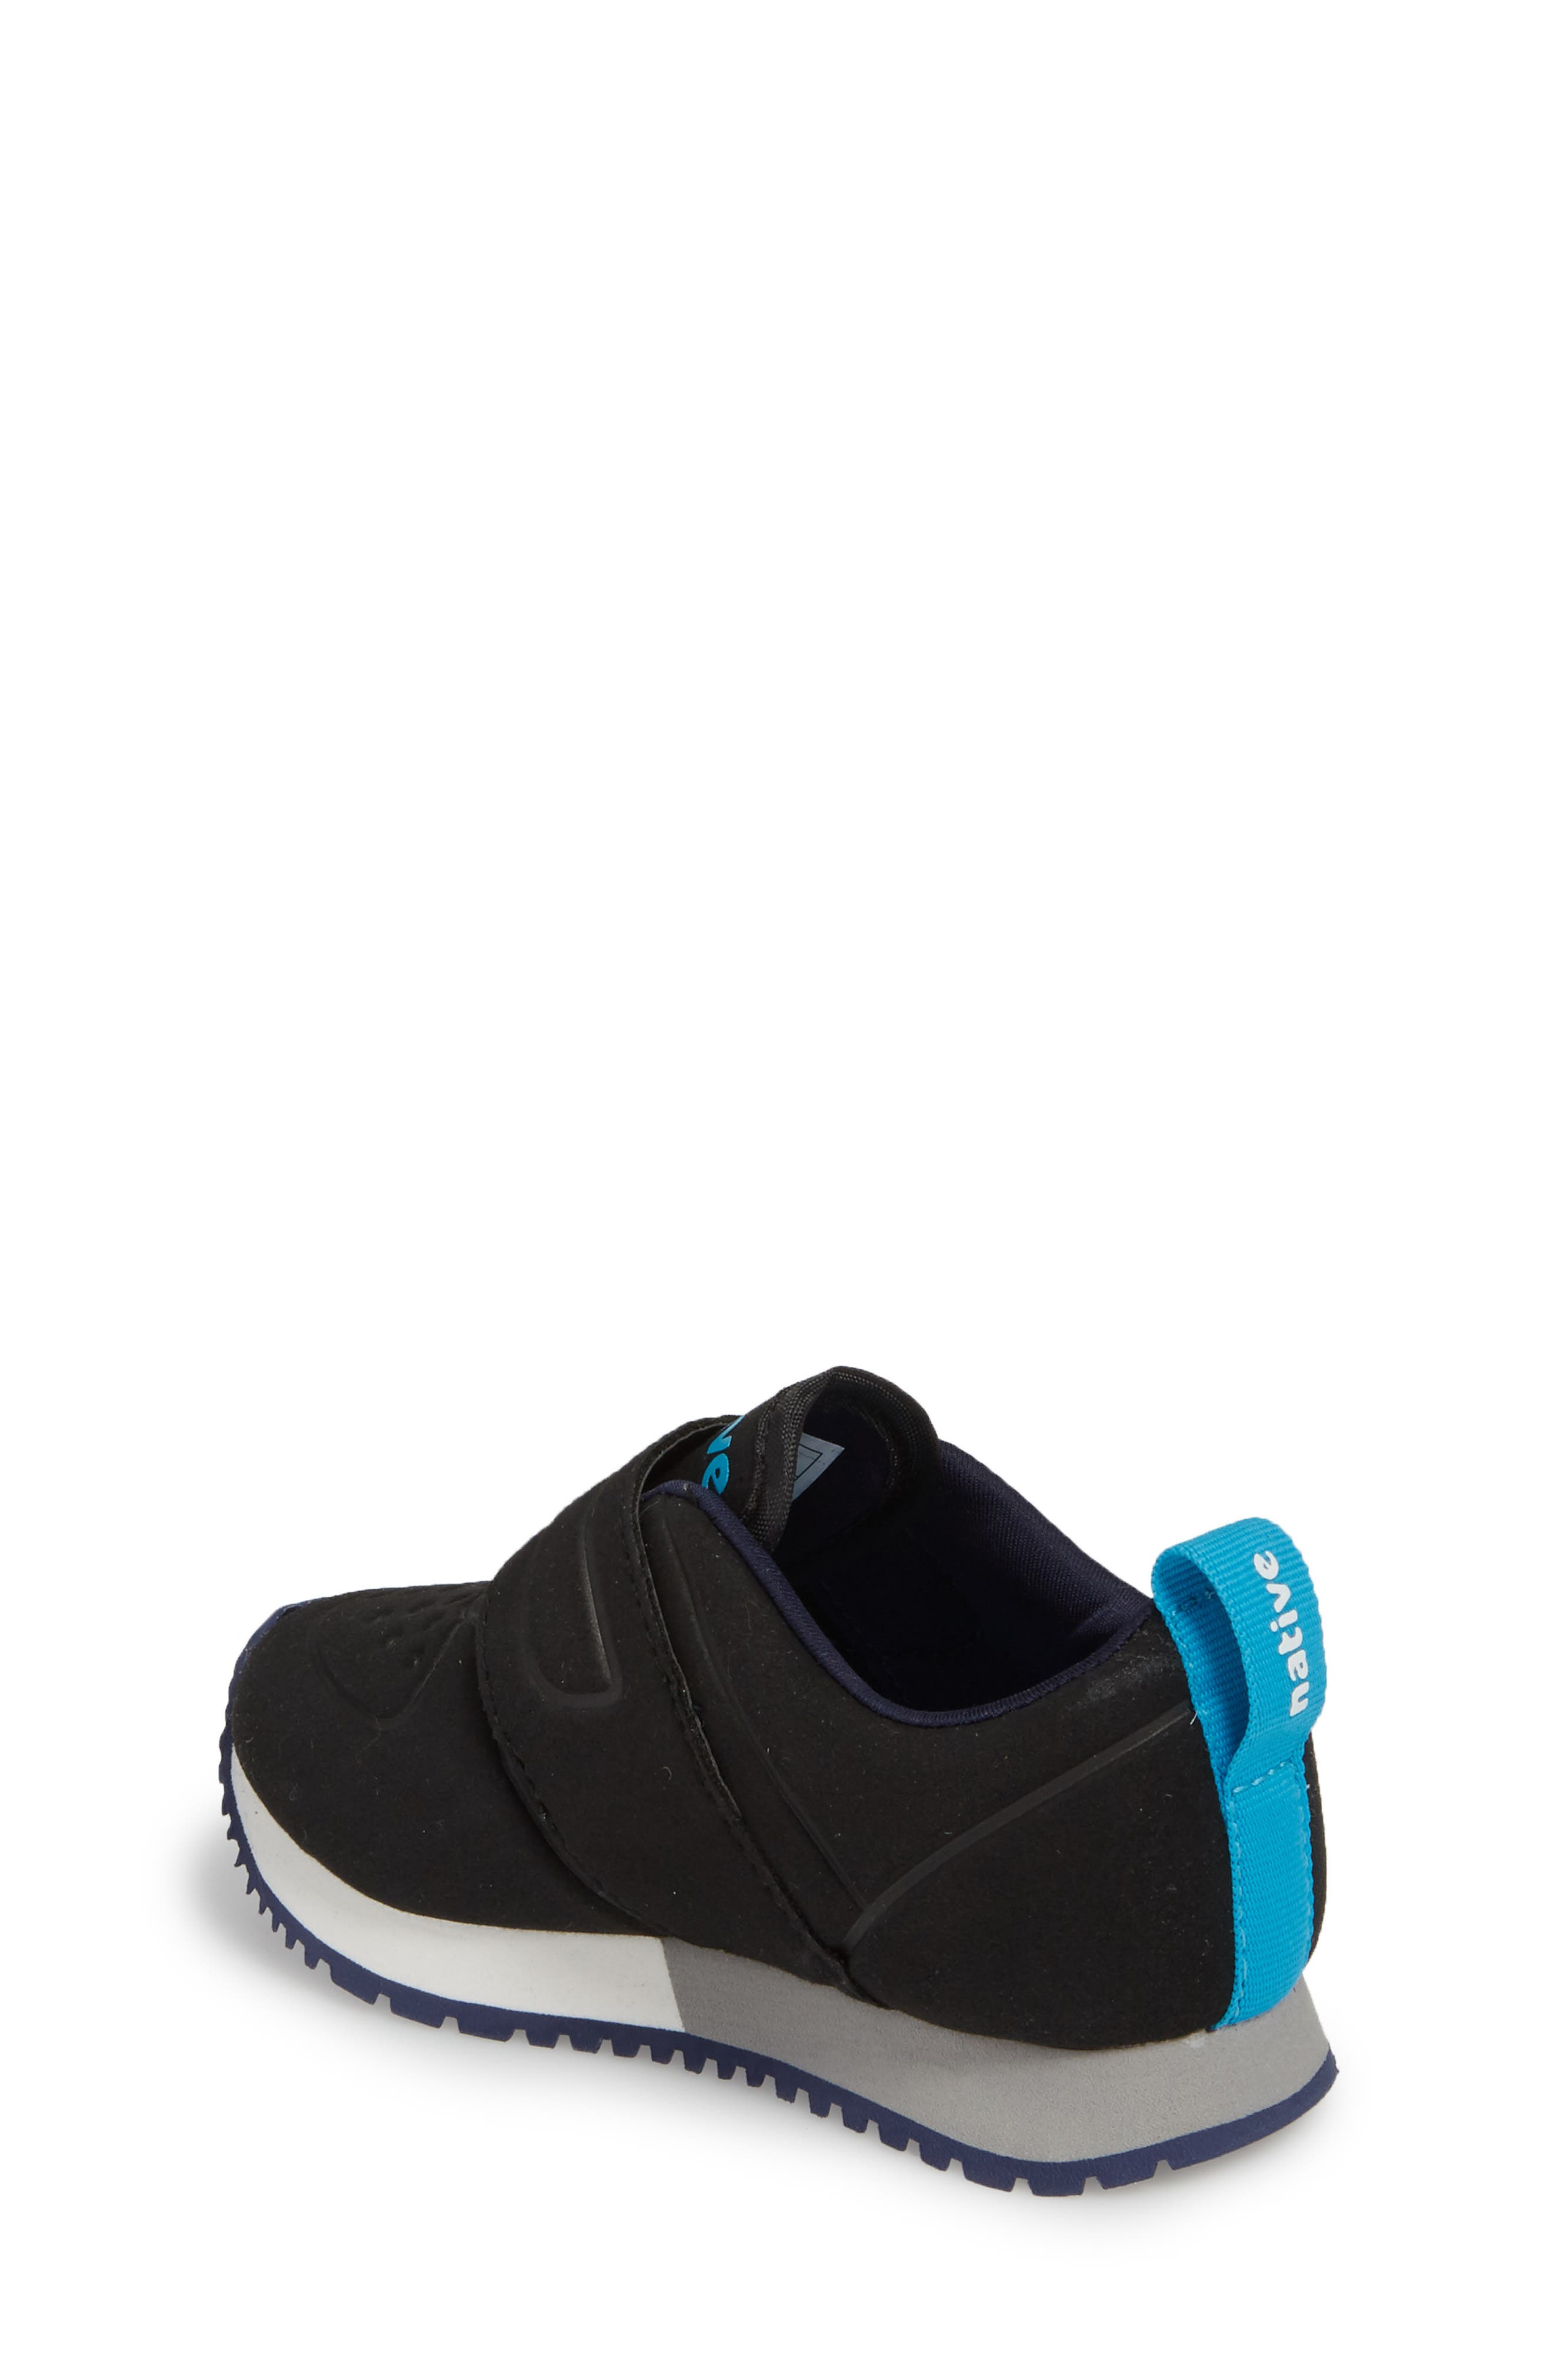 Native Cornell Perforated Sneaker,                             Alternate thumbnail 2, color,                             019